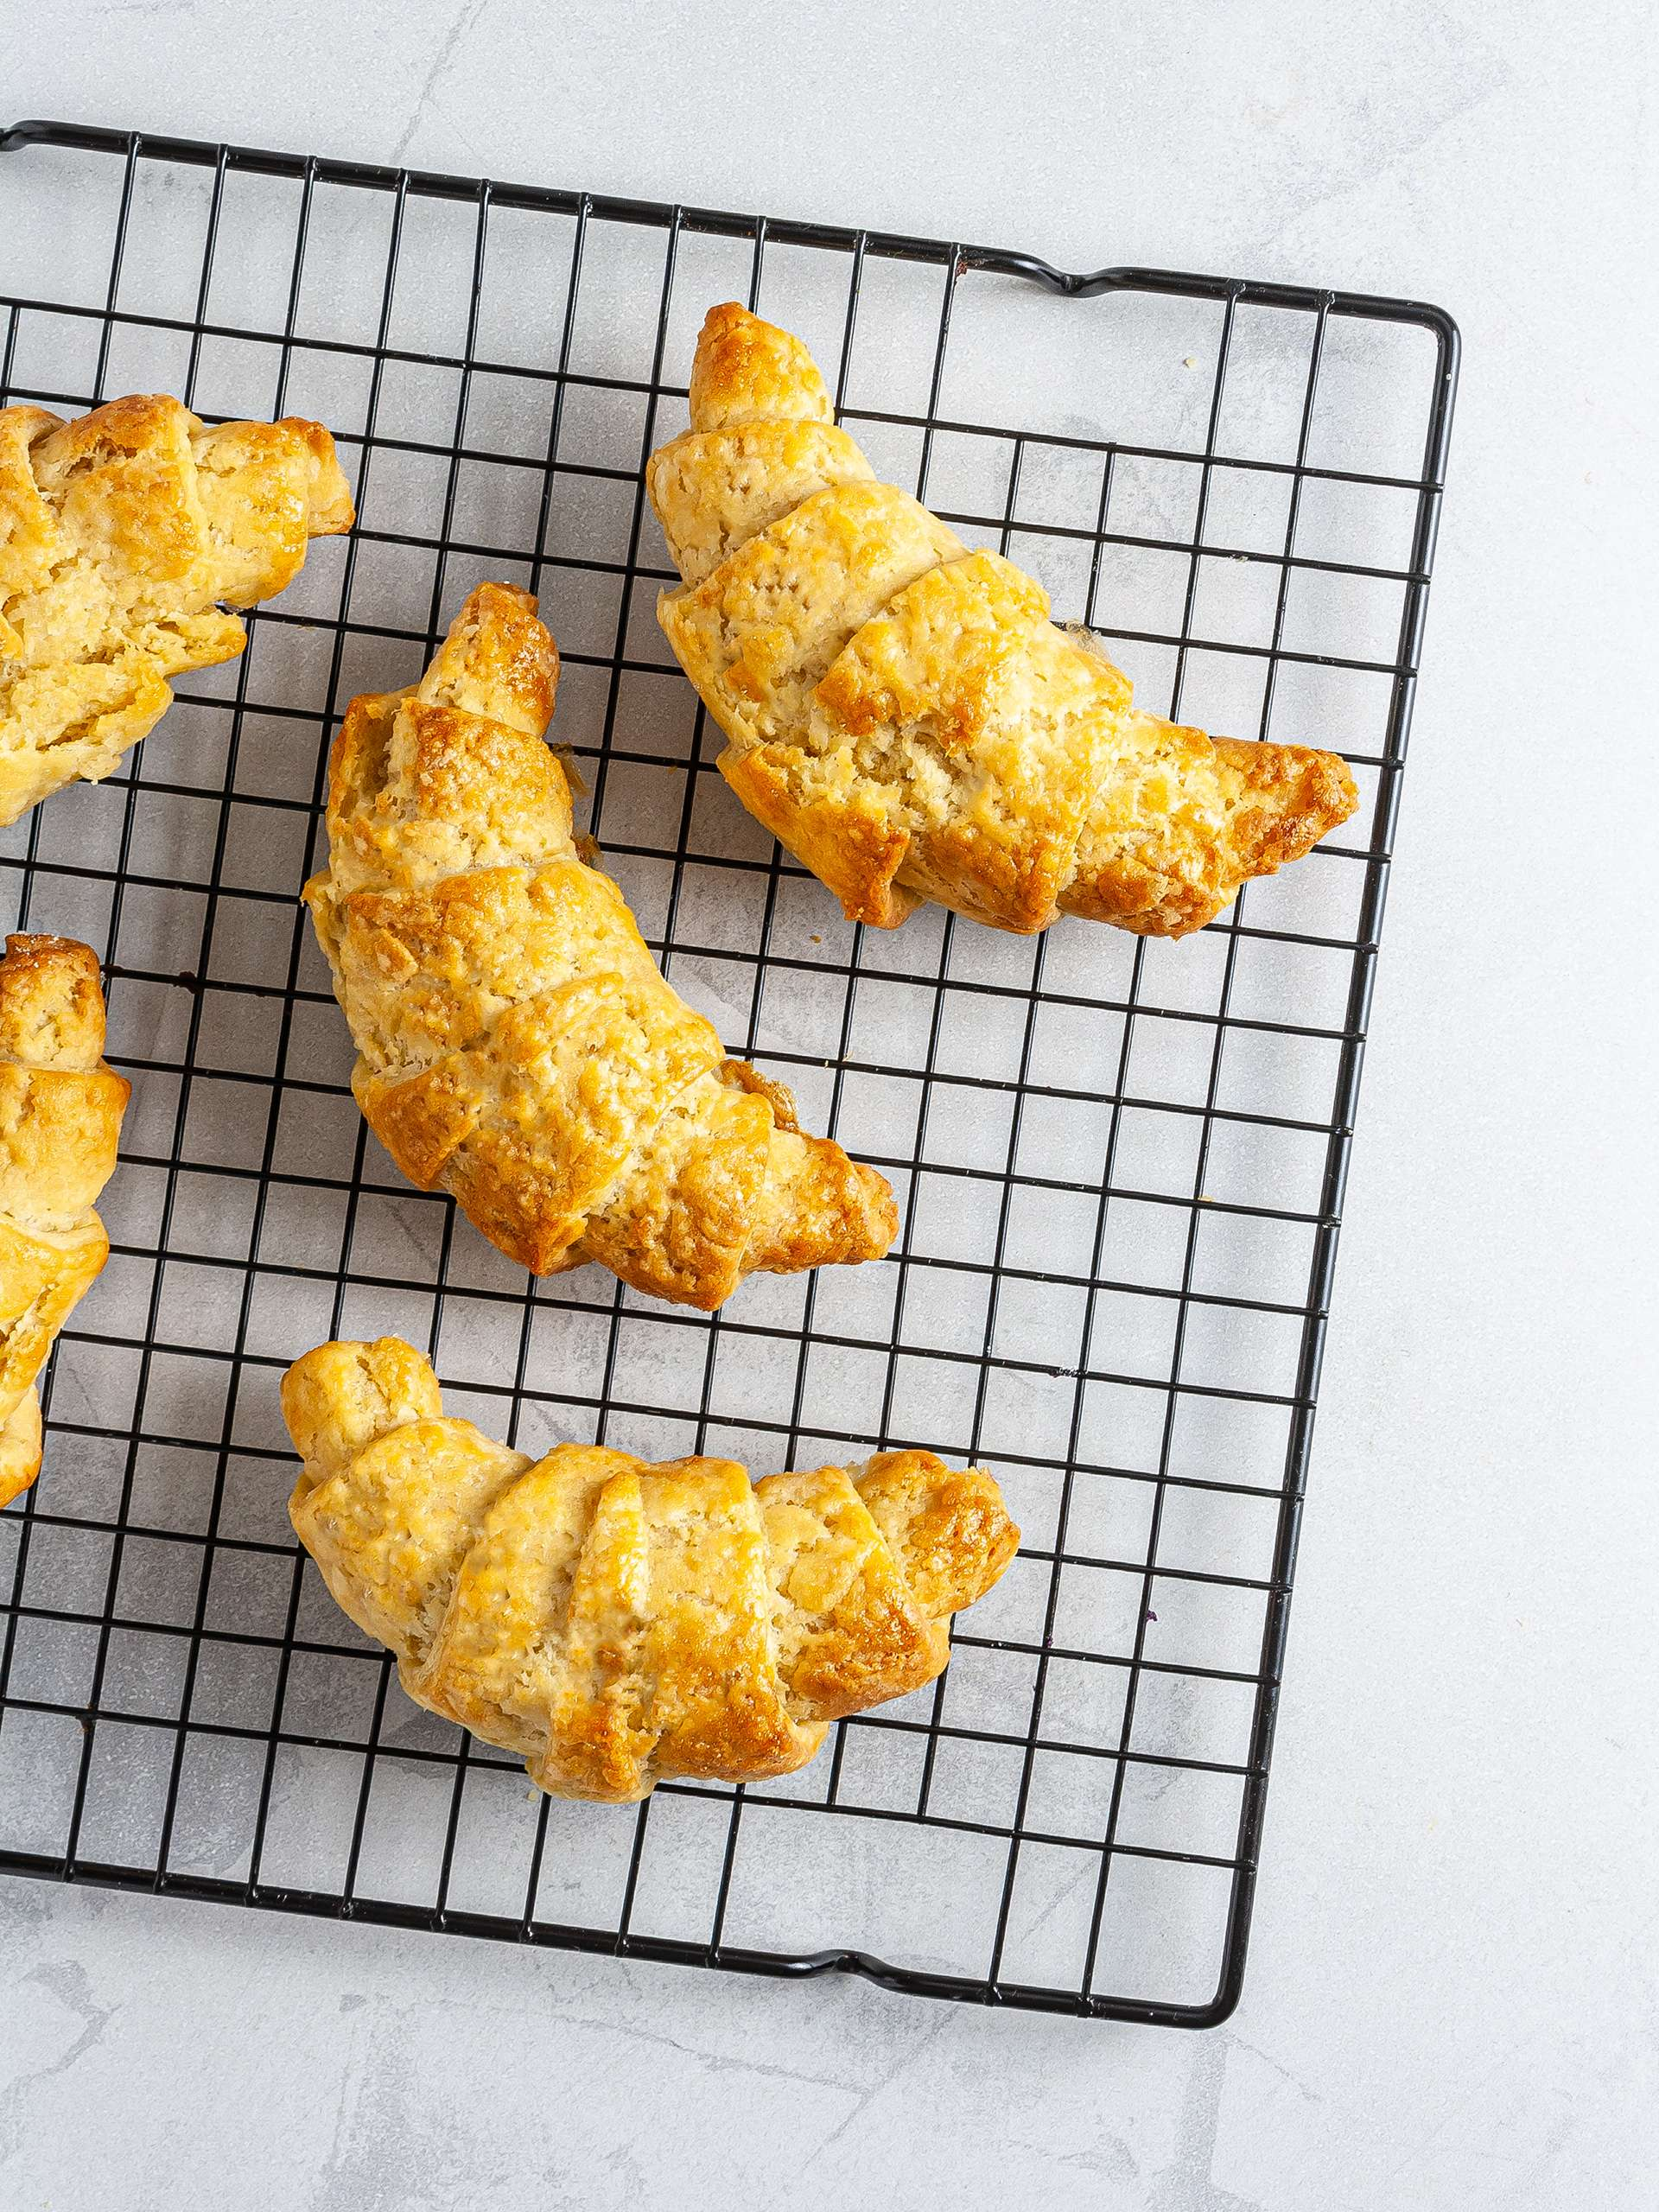 Baked croissants on a wire rack